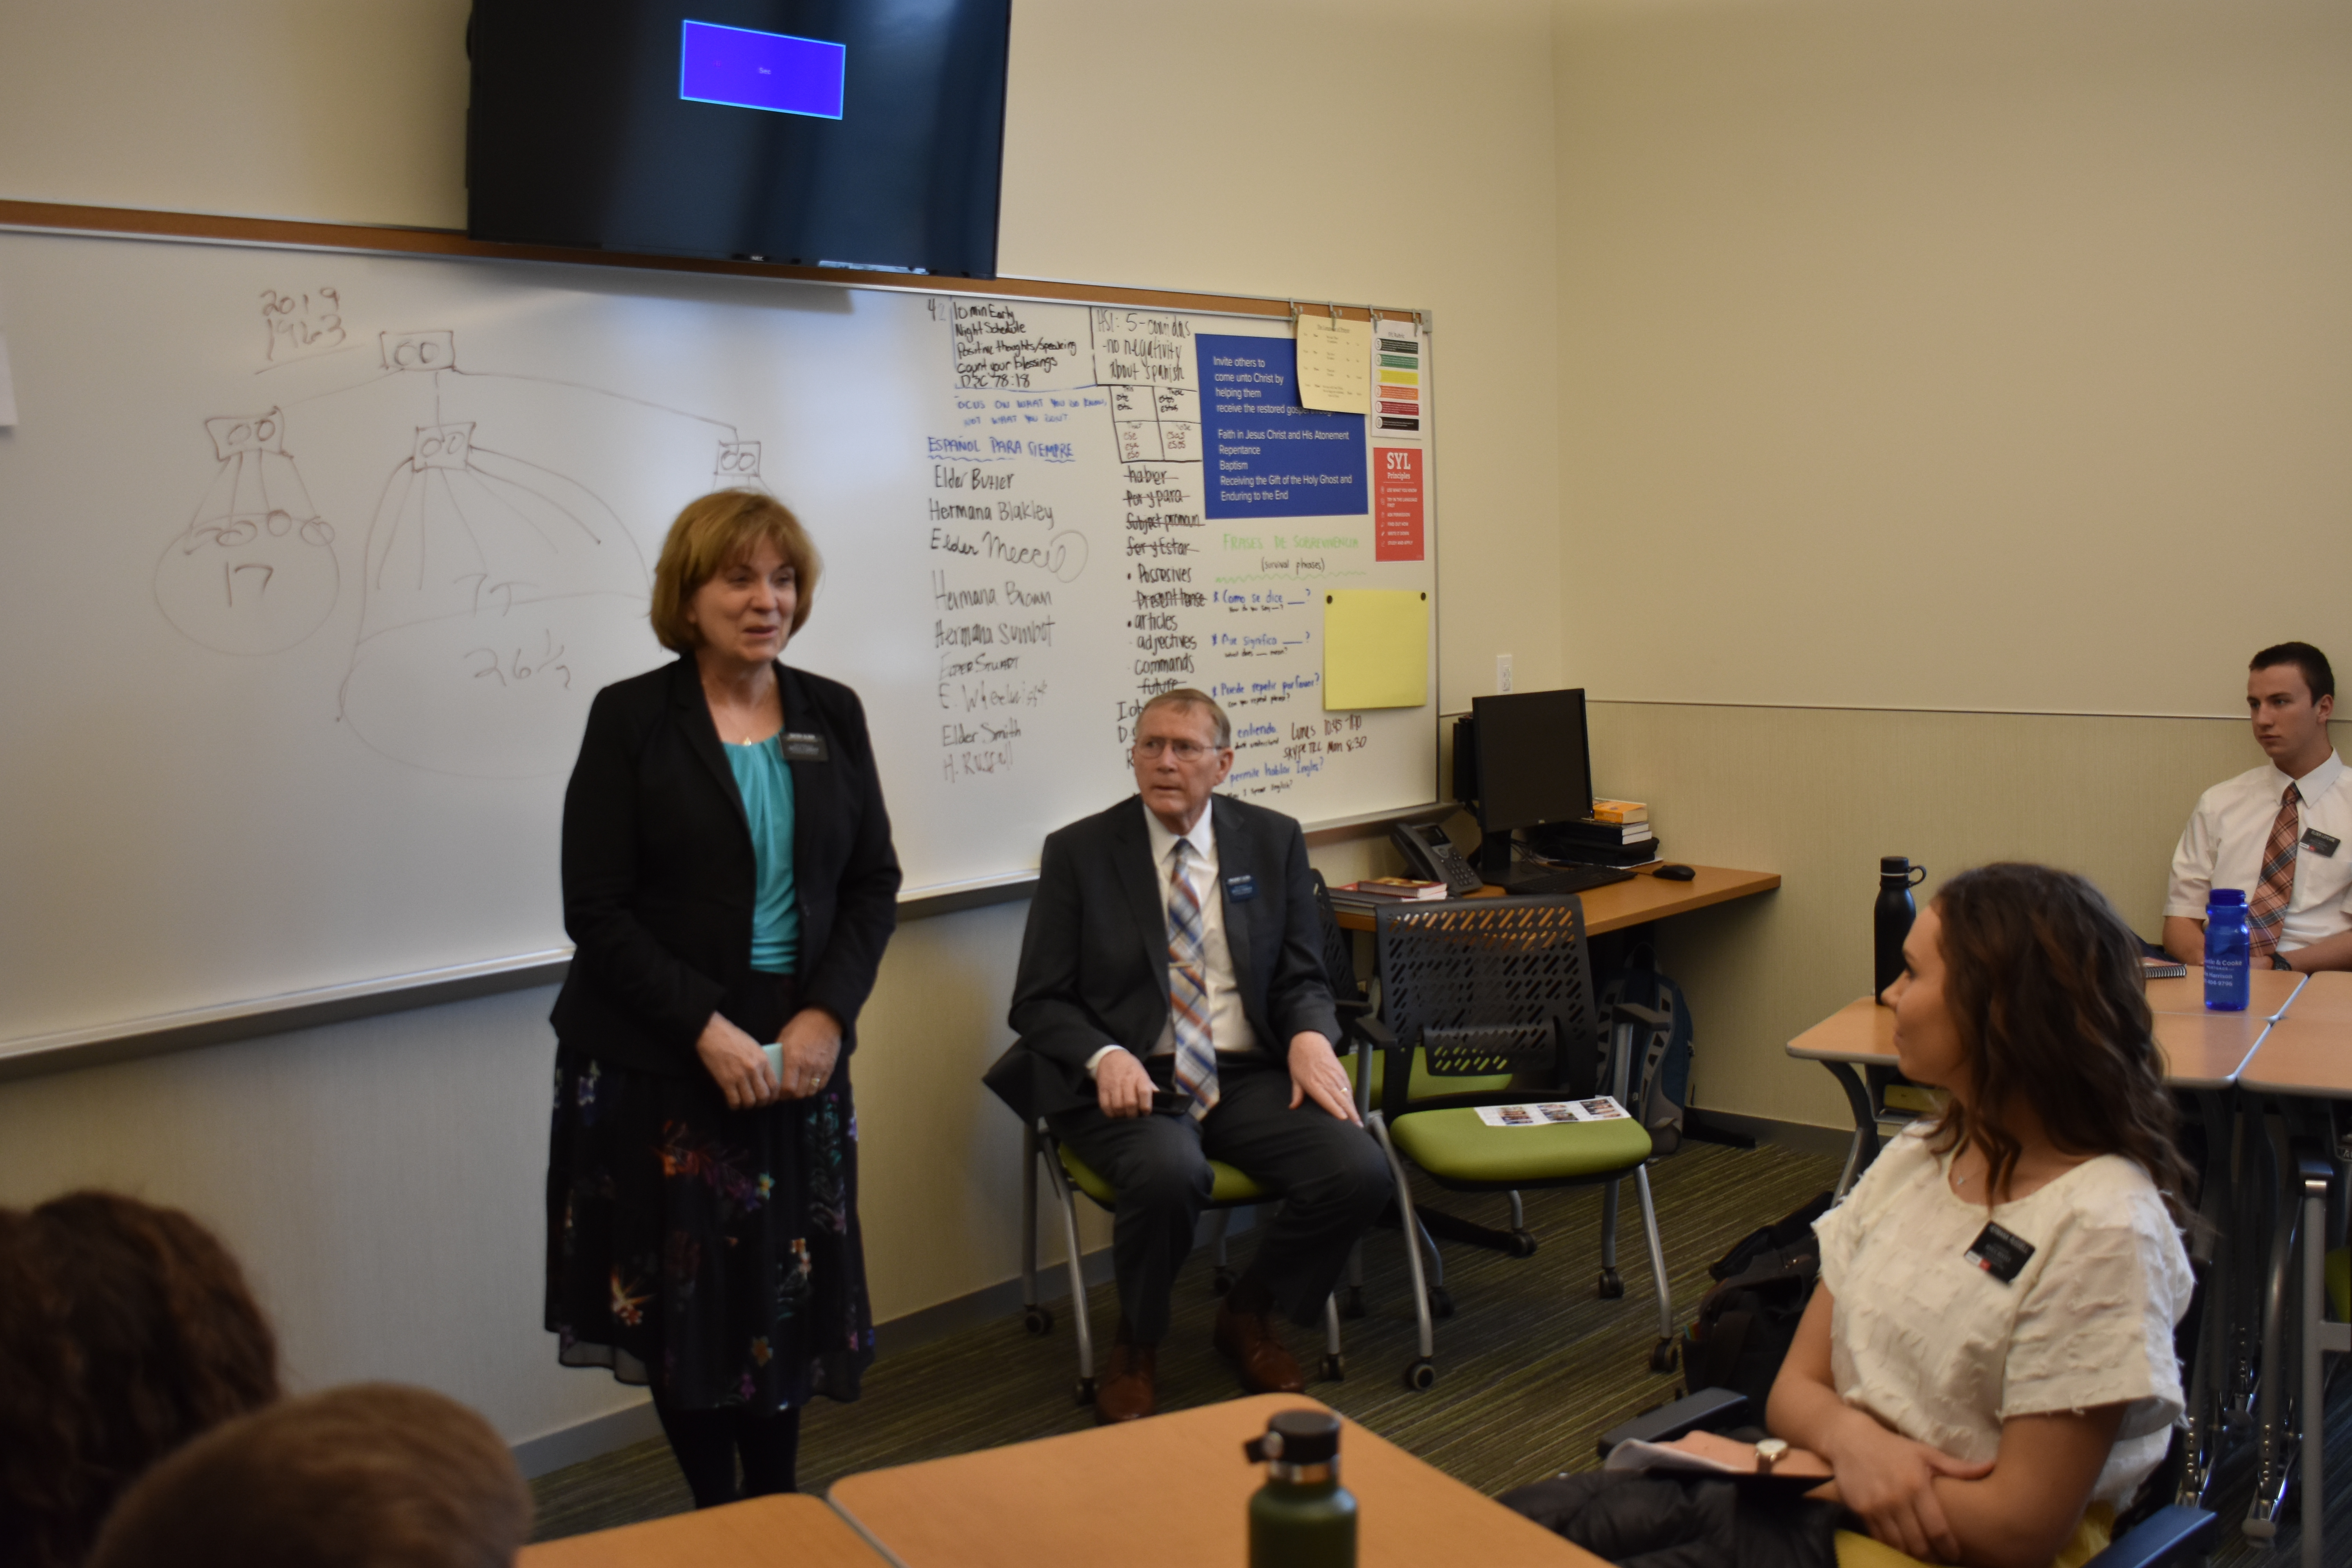 Sister Rose Ann Olson, standing, and President Timothy M. Olson of the Mexico Missionary Training Center meet with a classroom of missionaries at the Provo MTC on Wednesday, Jan. 16, 2019. The Olsons were participating in the 2019 MTC Leadership Seminar, conducted Jan. 14-17 in Provo and Salt Lake City, Utah.